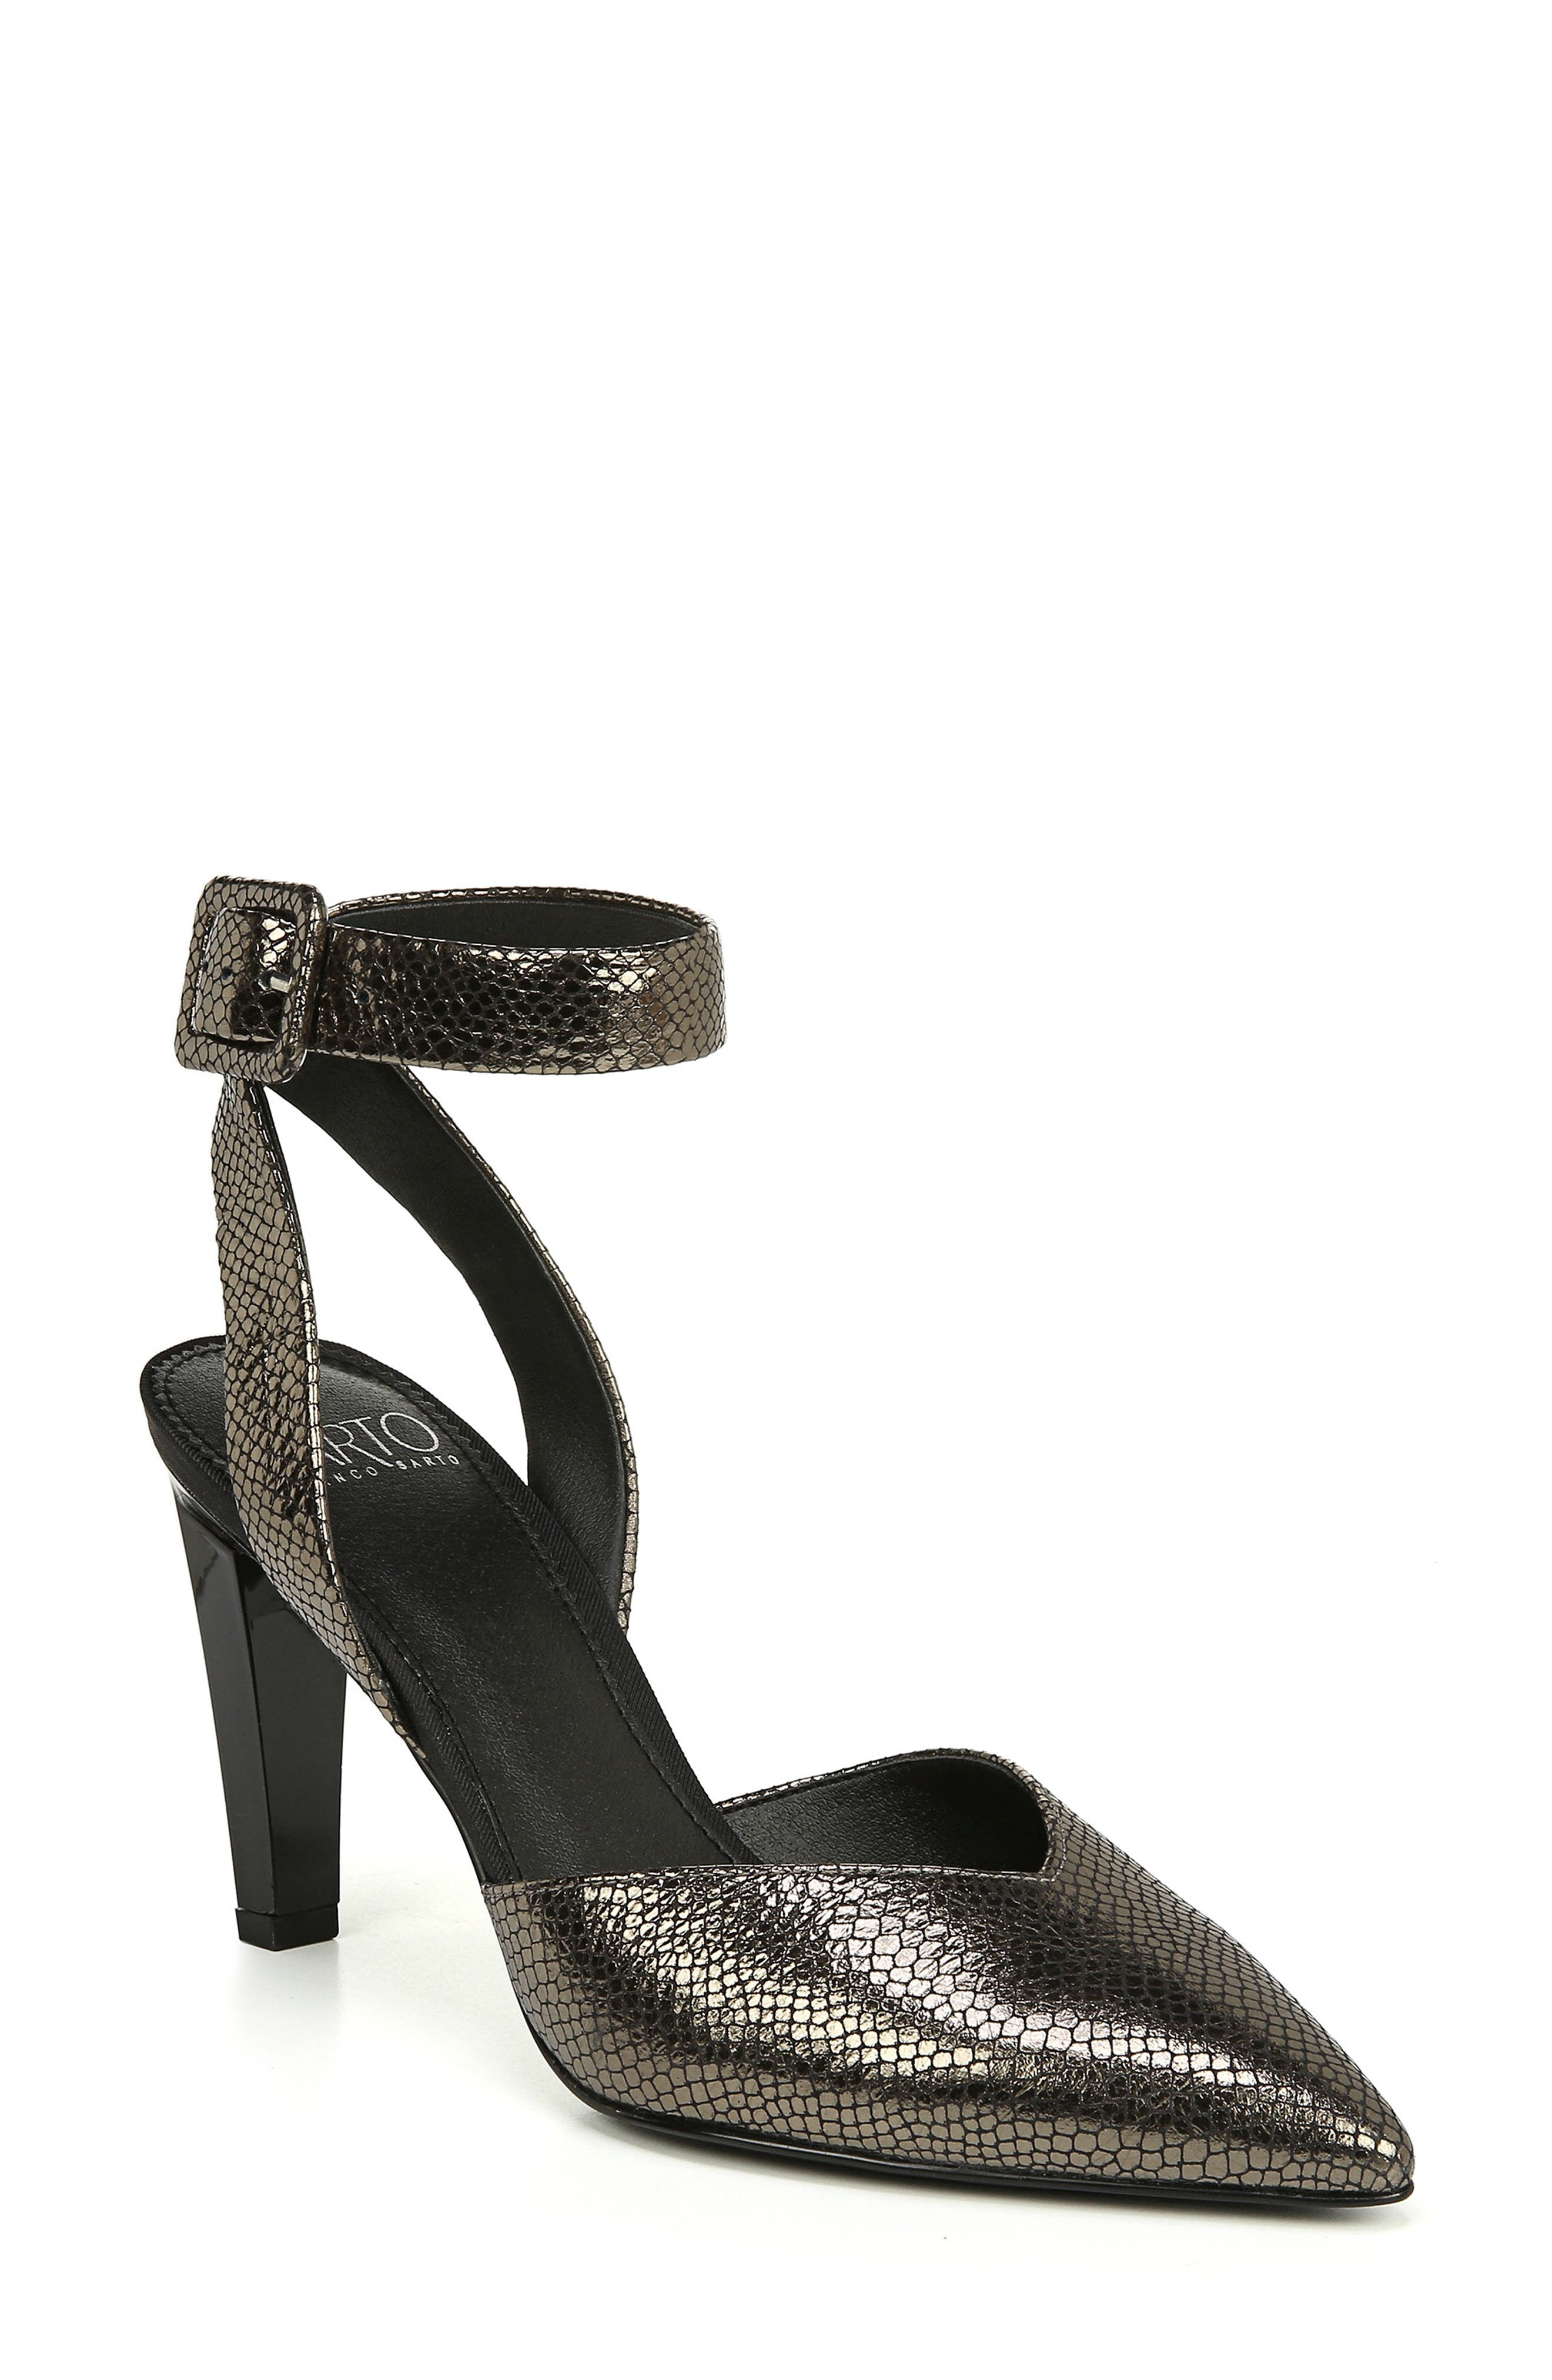 Santi Ankle Strap Pump,                         Main,                         color, PEWTER LEATHER